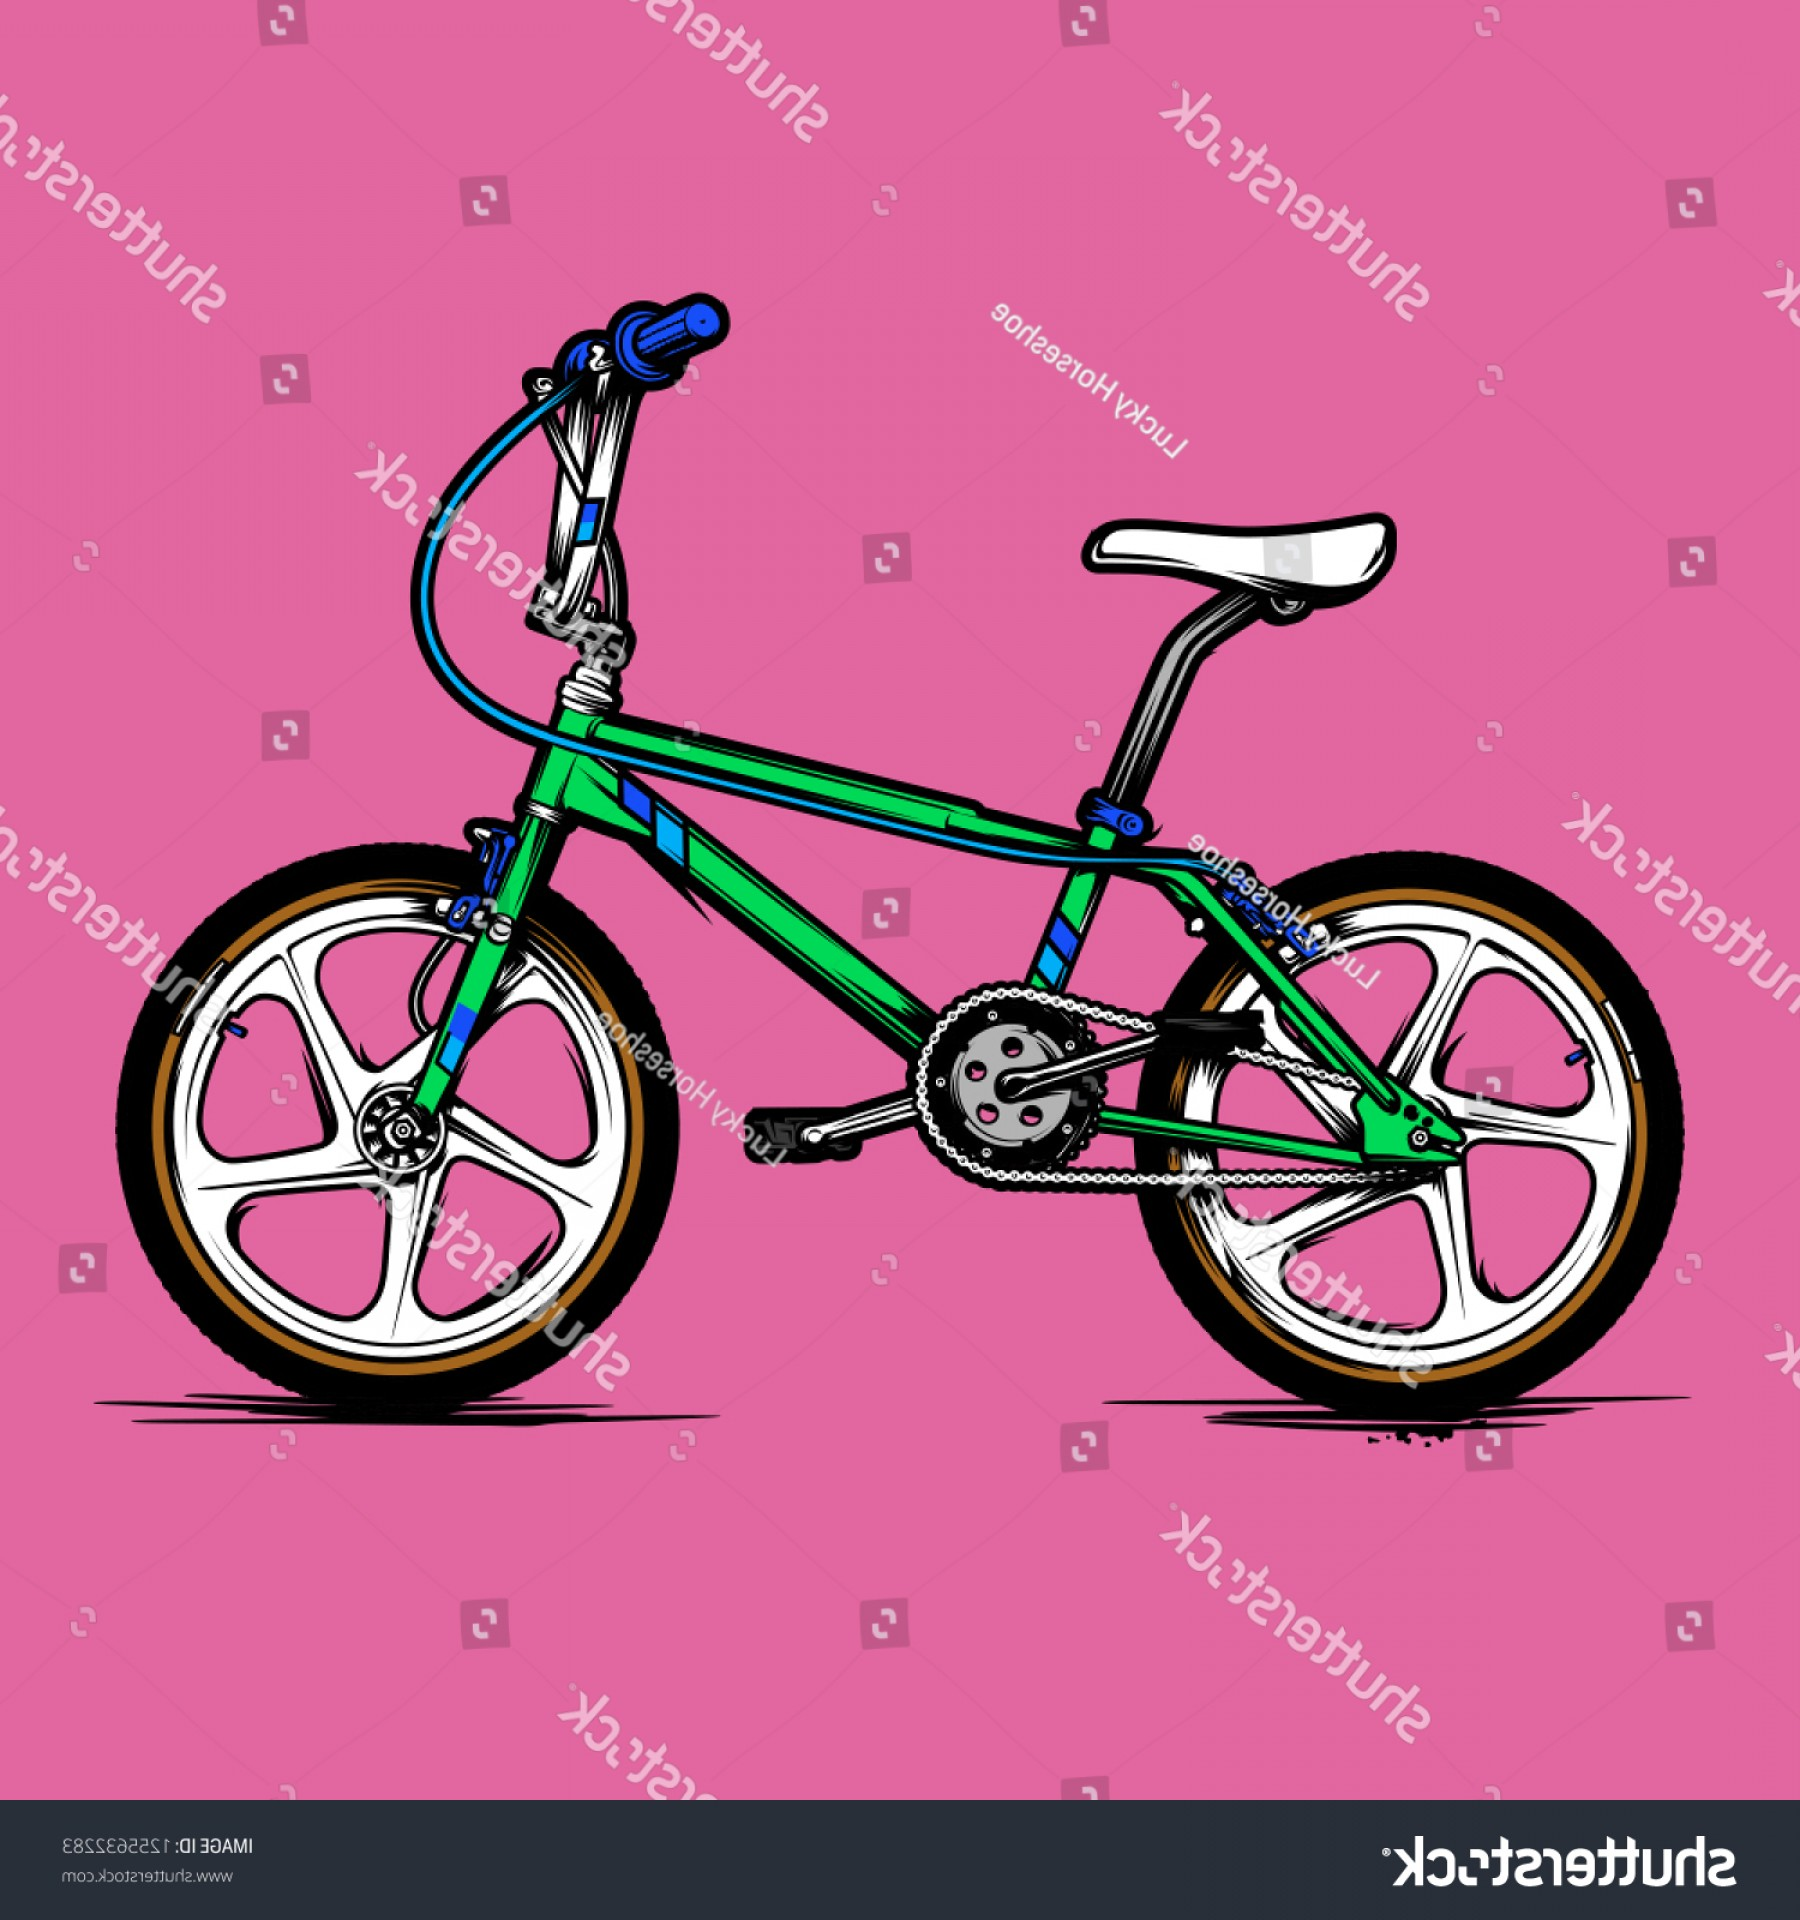 BMX Bike Tire Vector: Old School Bmx Bicycle Vector Illustration